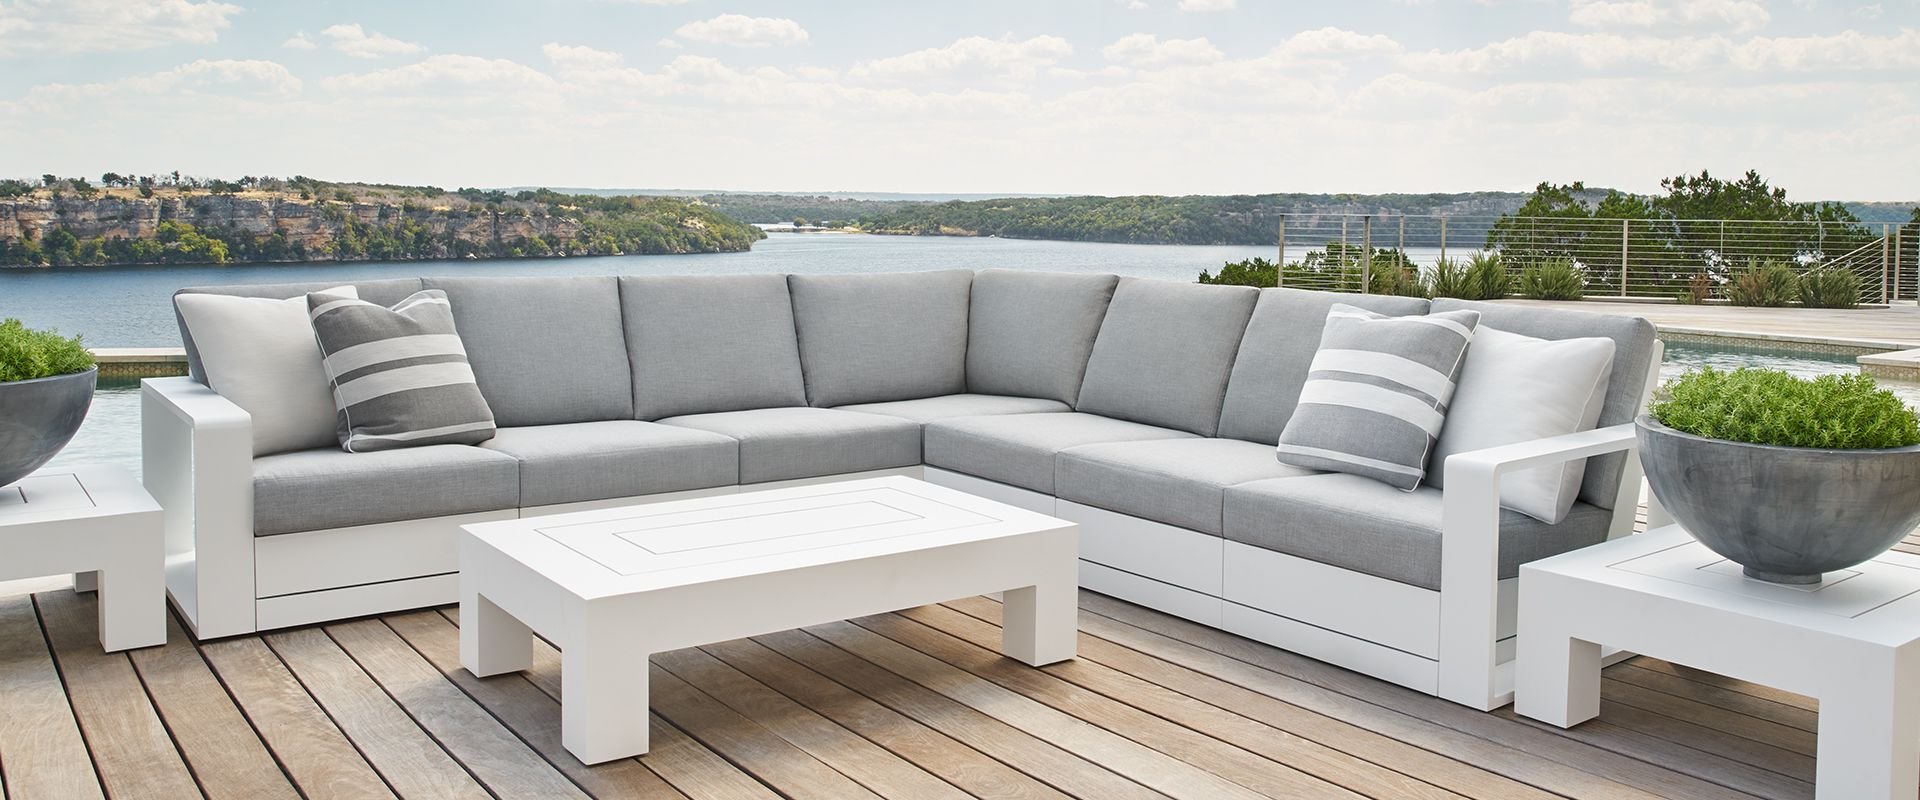 Luxury Outdoor Furniture And Indoor Within Well Known Boyce Outdoor Patio Sectionals With Cushions (Gallery 22 of 25)